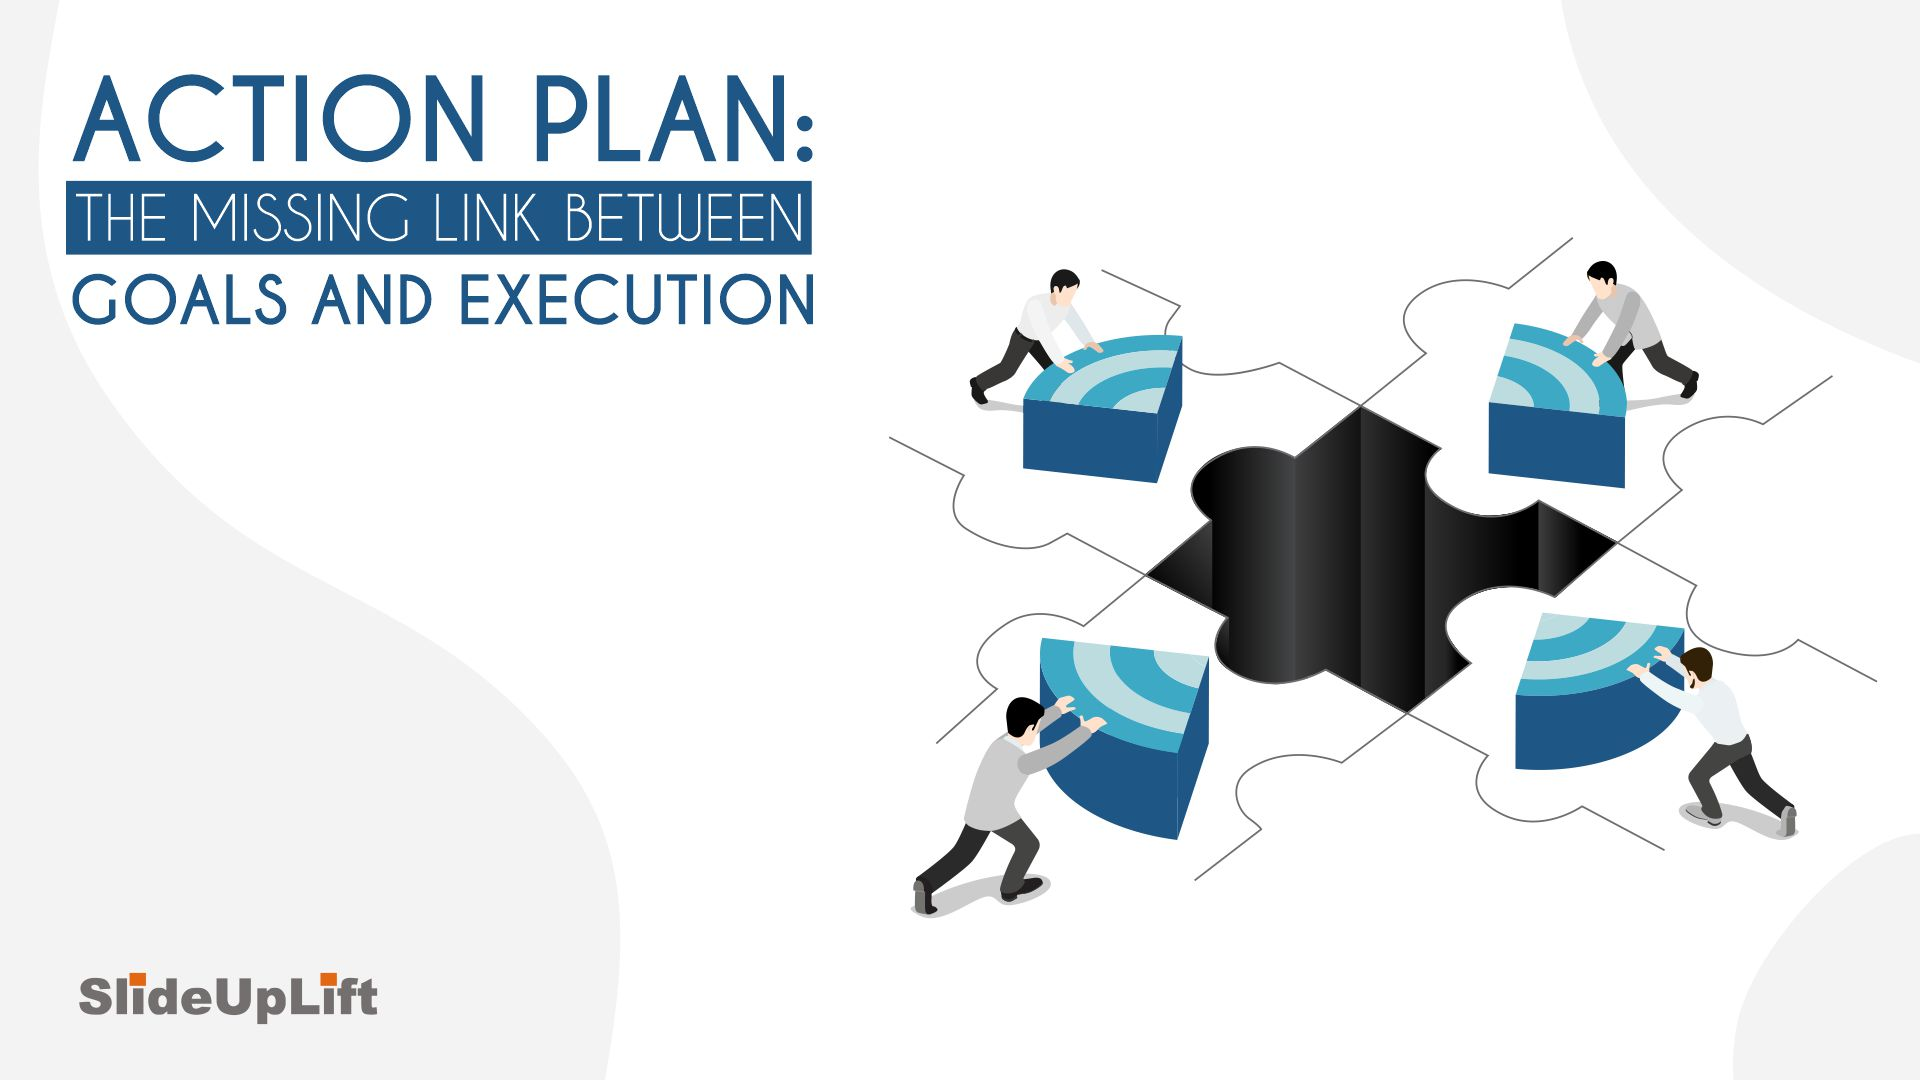 Action Plan: The Missing link between Goals and Execution